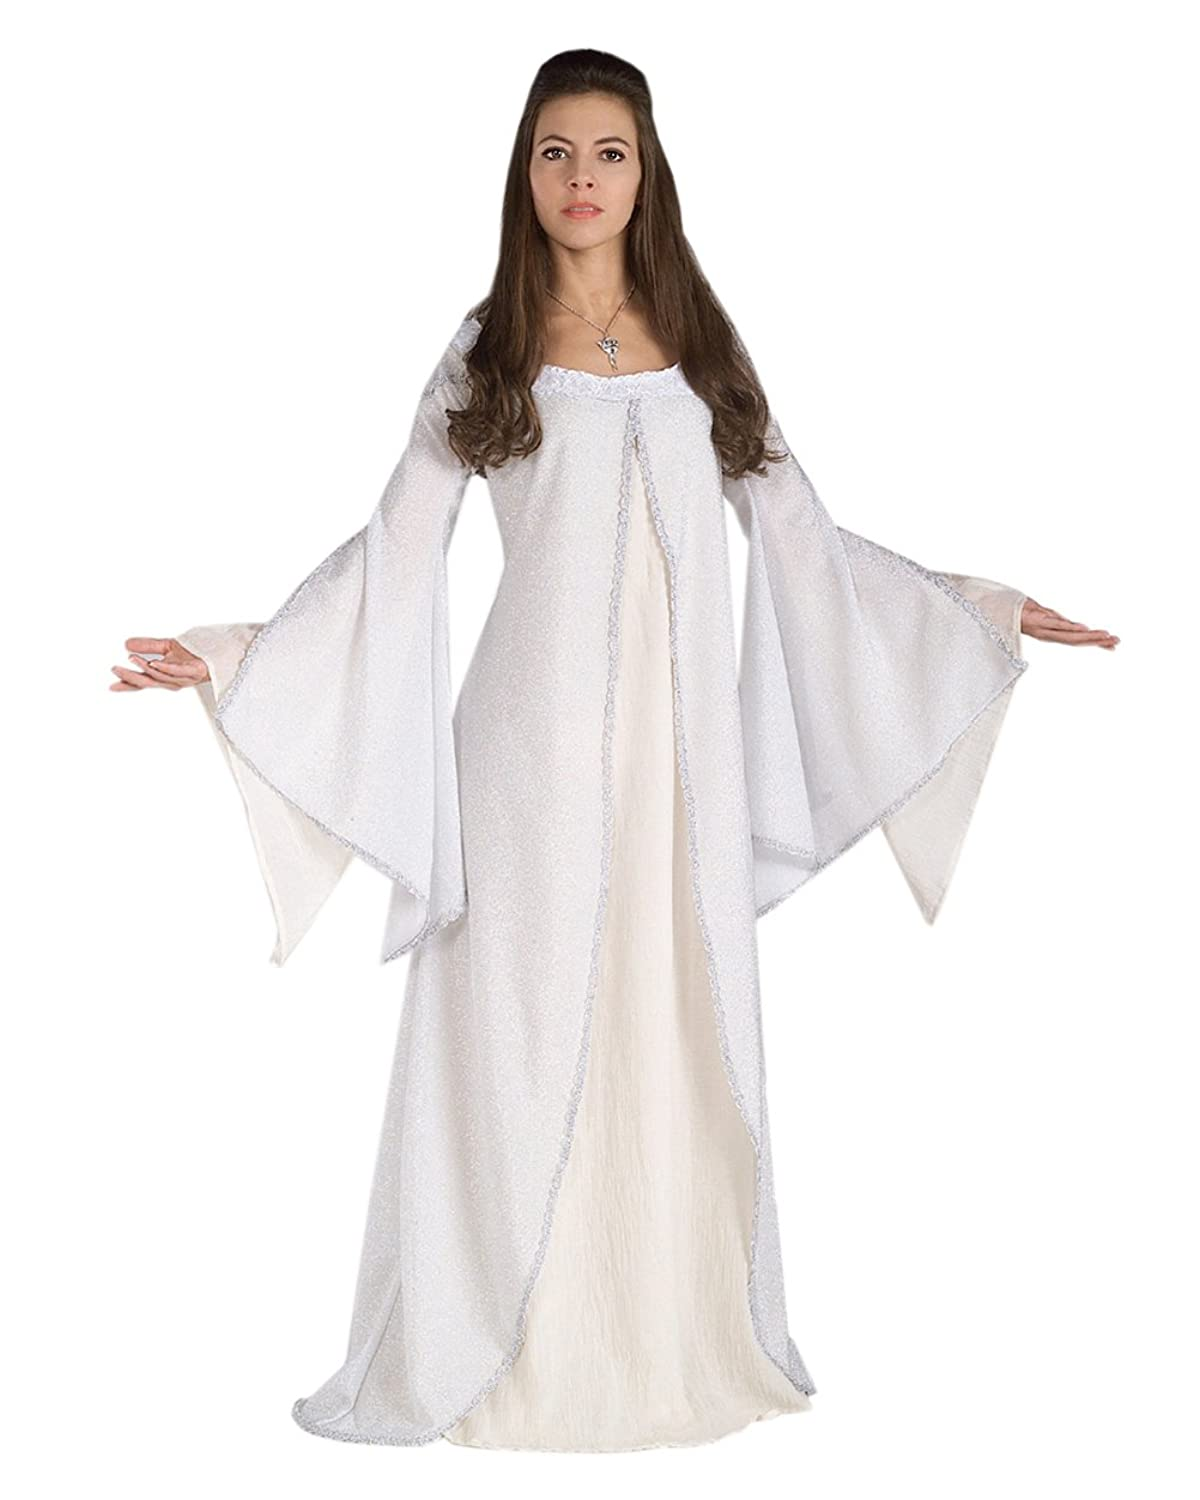 Amazoncom Arwen Theatre Costumes White Gown LOTR Lord of the